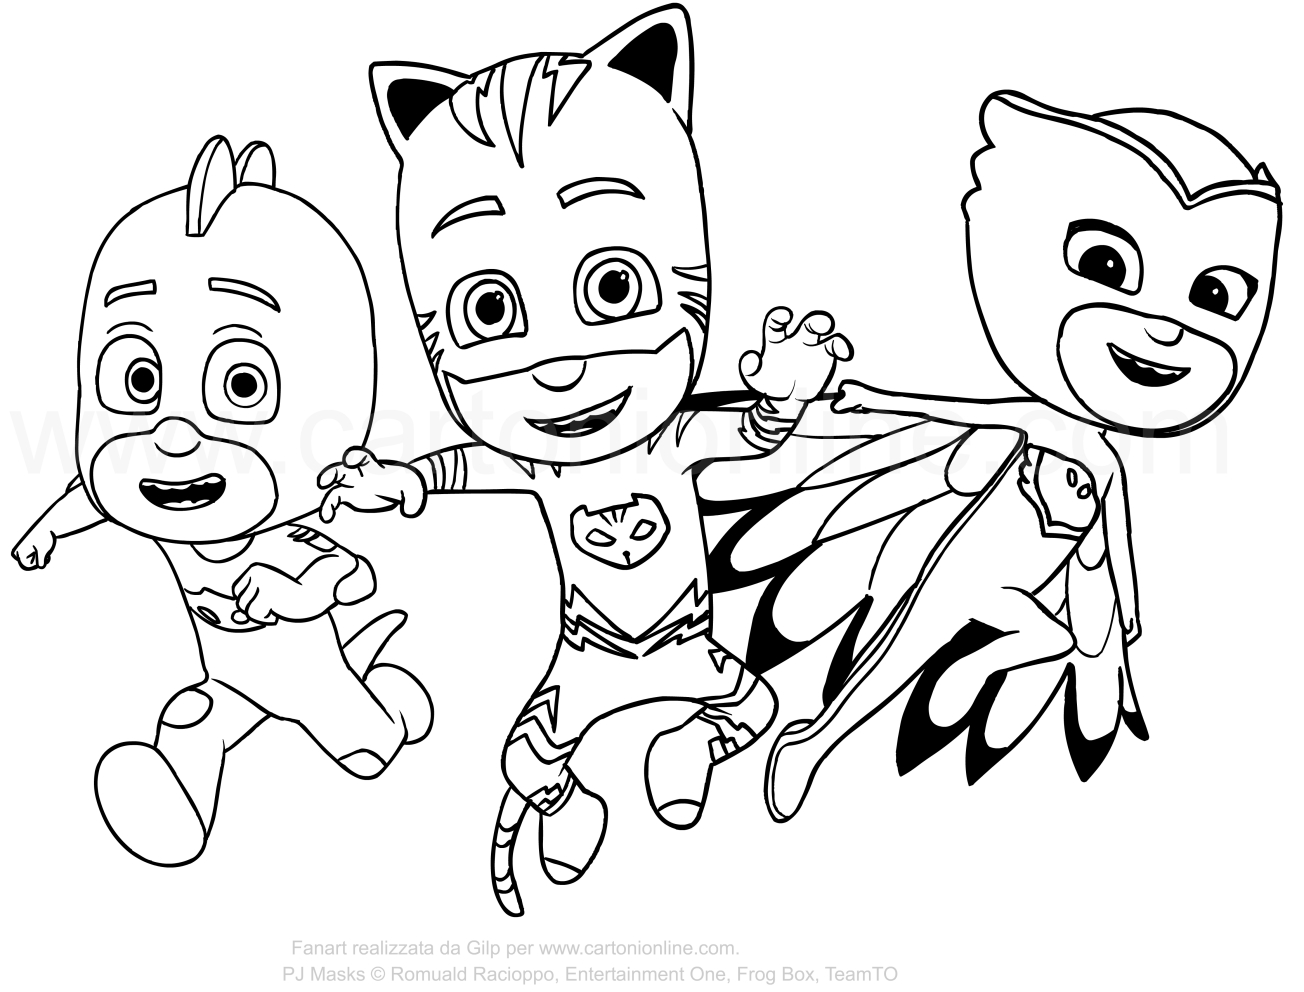 Coloring Pages Of Pj Masks At Getcolorings